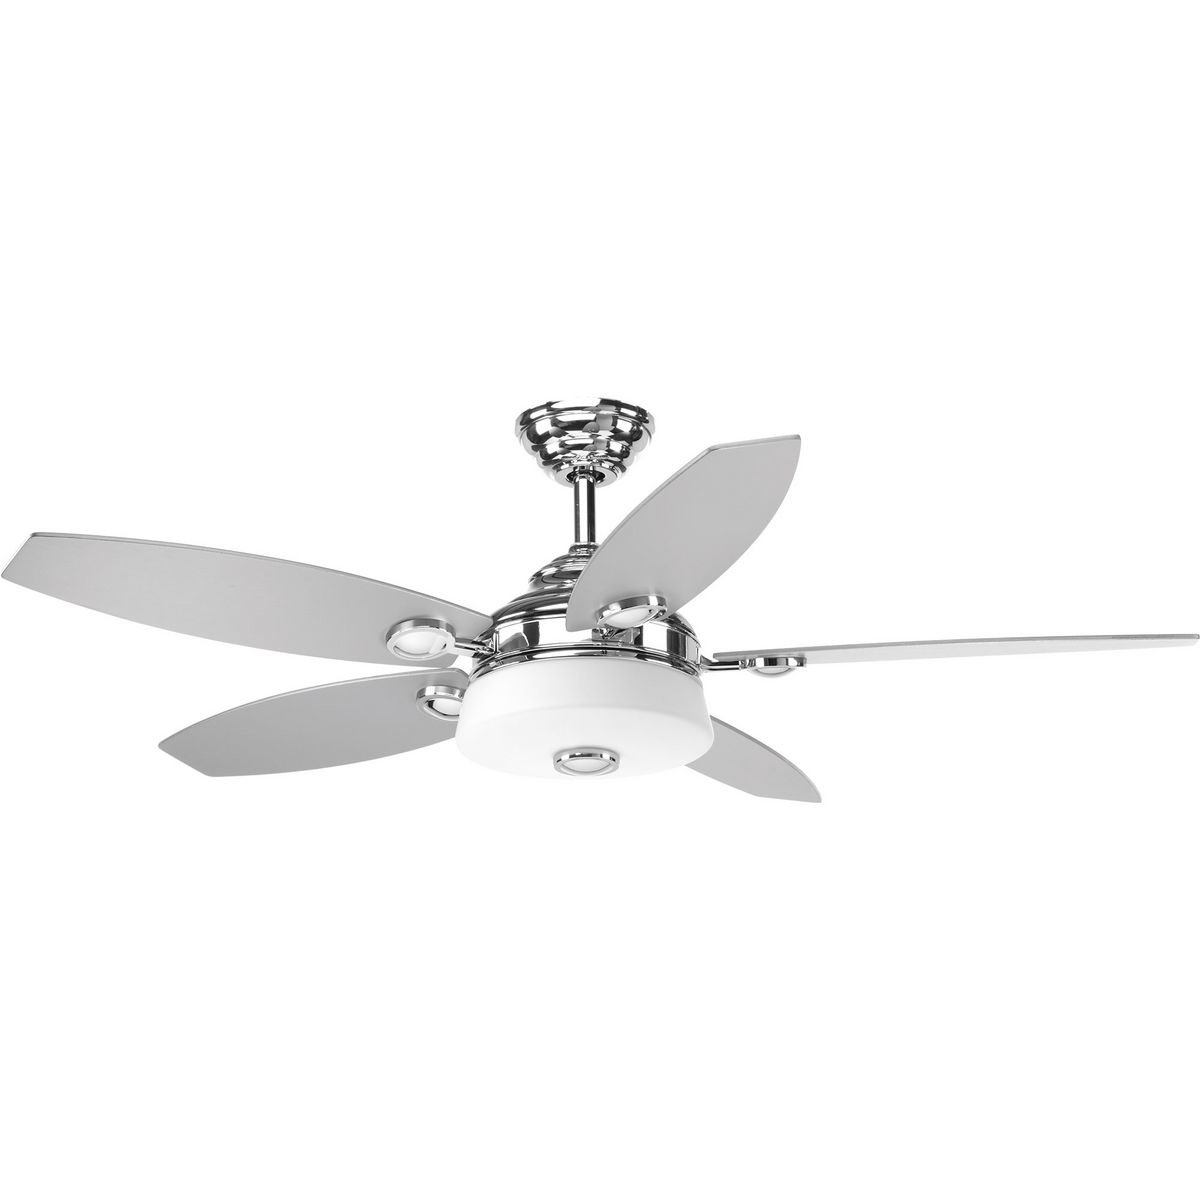 "Heskett 3 Blade Led Ceiling Fans Inside 2020 54"" Keriann 5 Blade Led Ceiling Fan With Remote, Light Kit Included (View 20 of 20)"